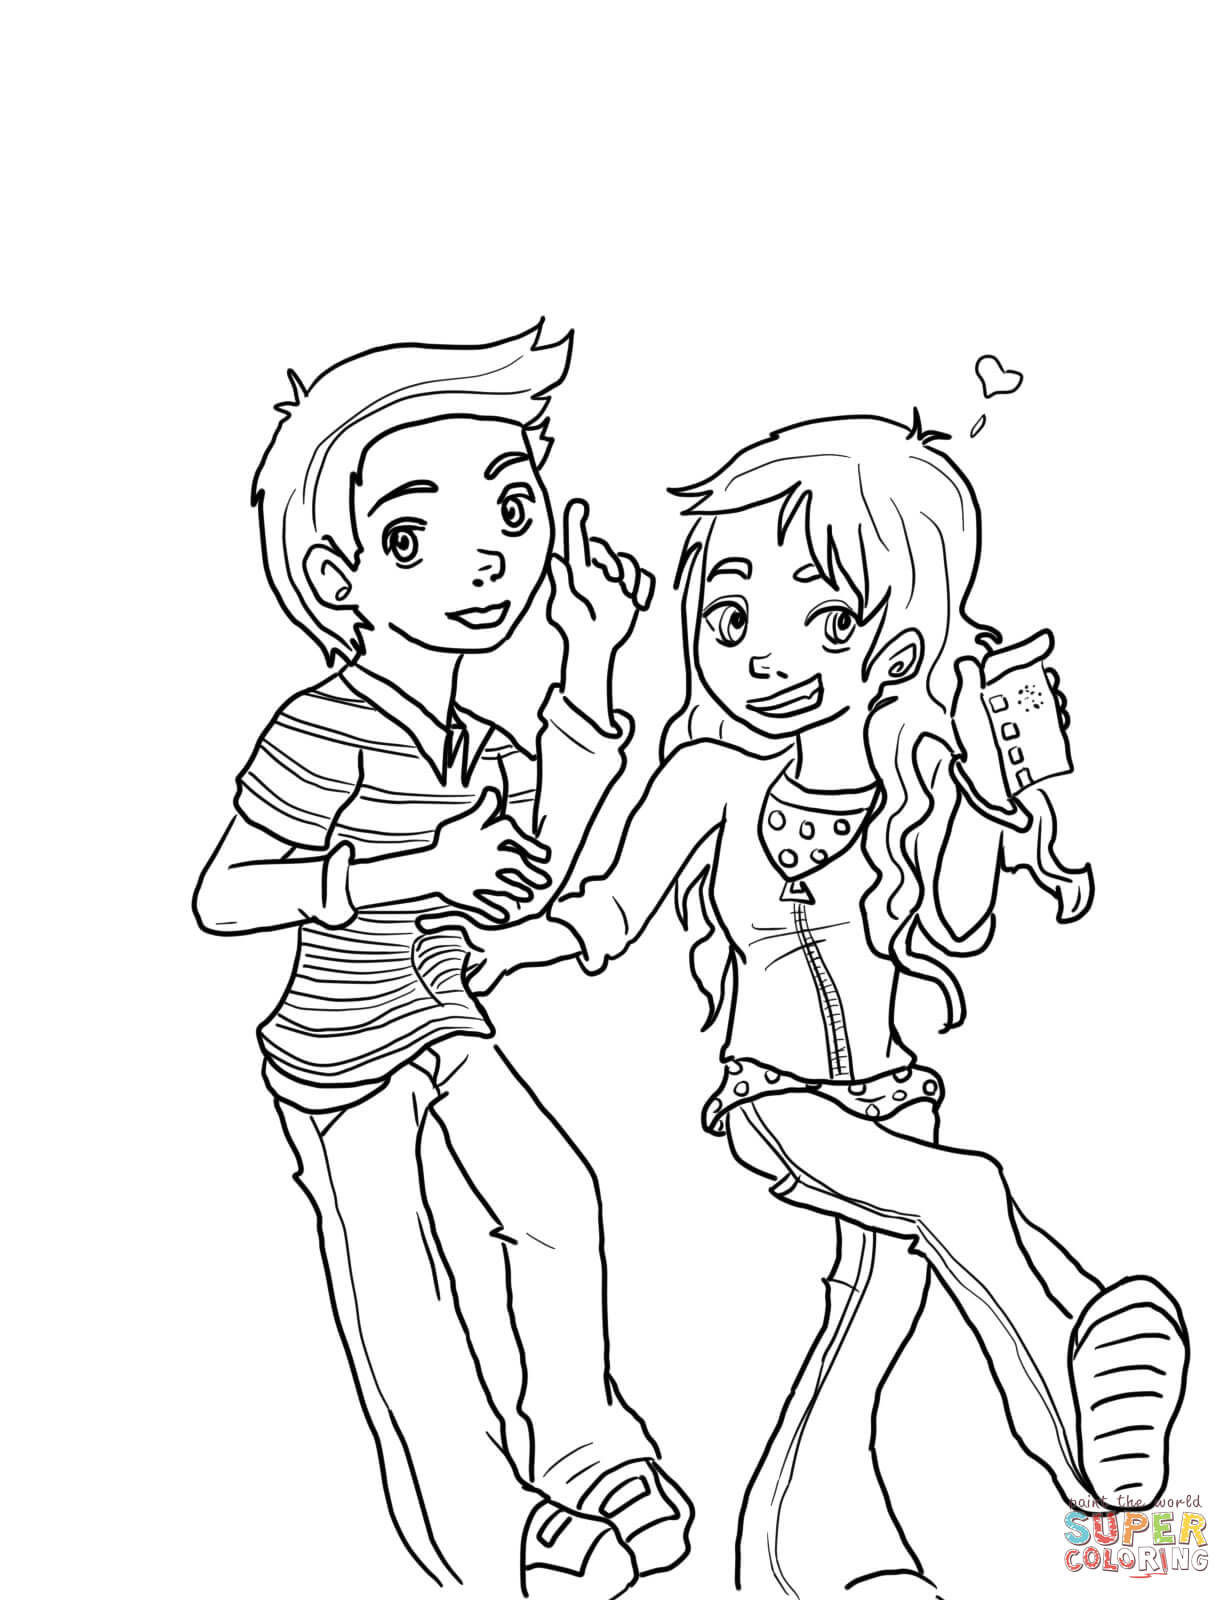 iCarly coloring page   1600x1232